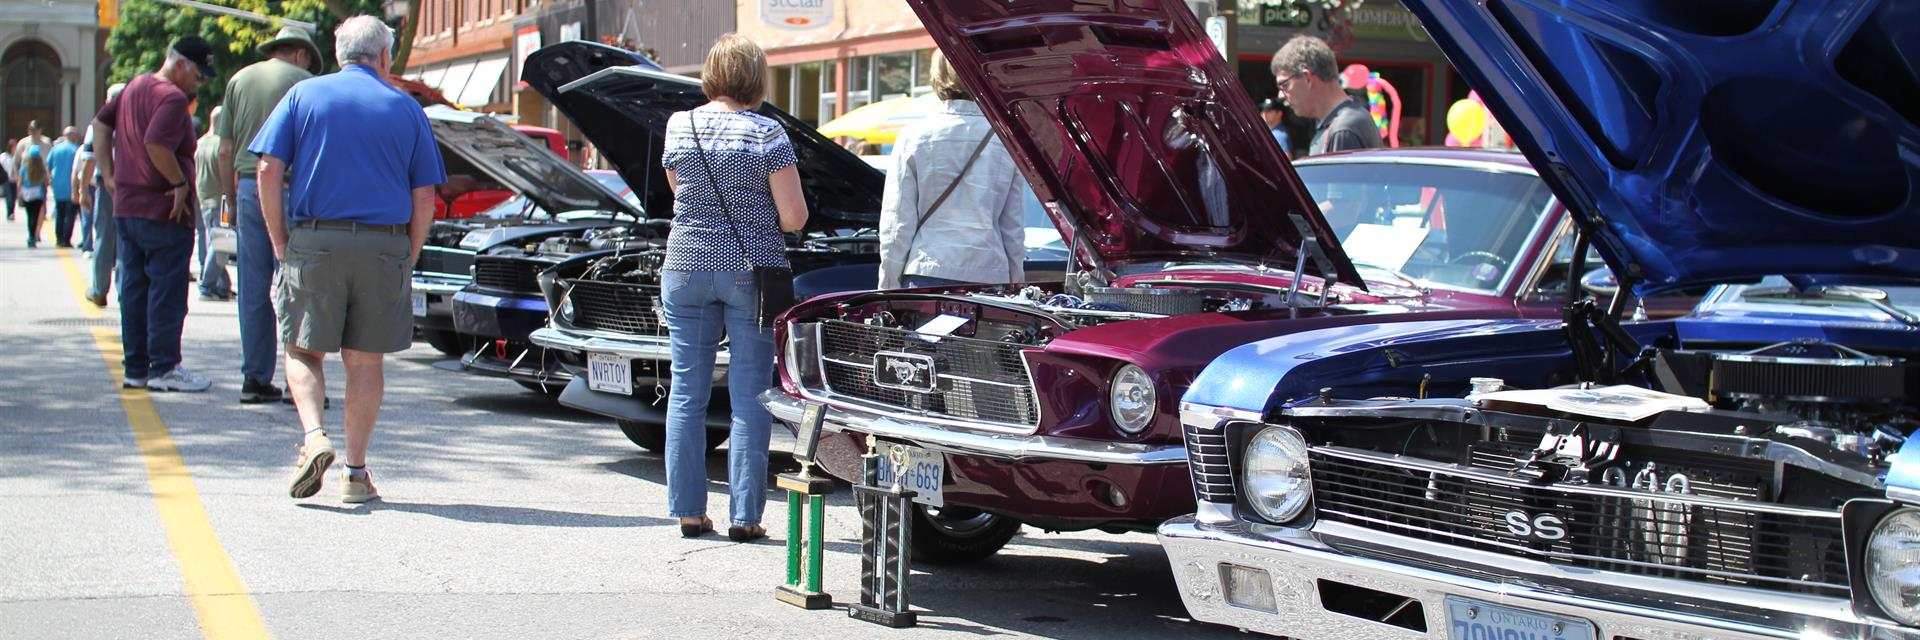 people admiring cars at retrofest in downtown chatham